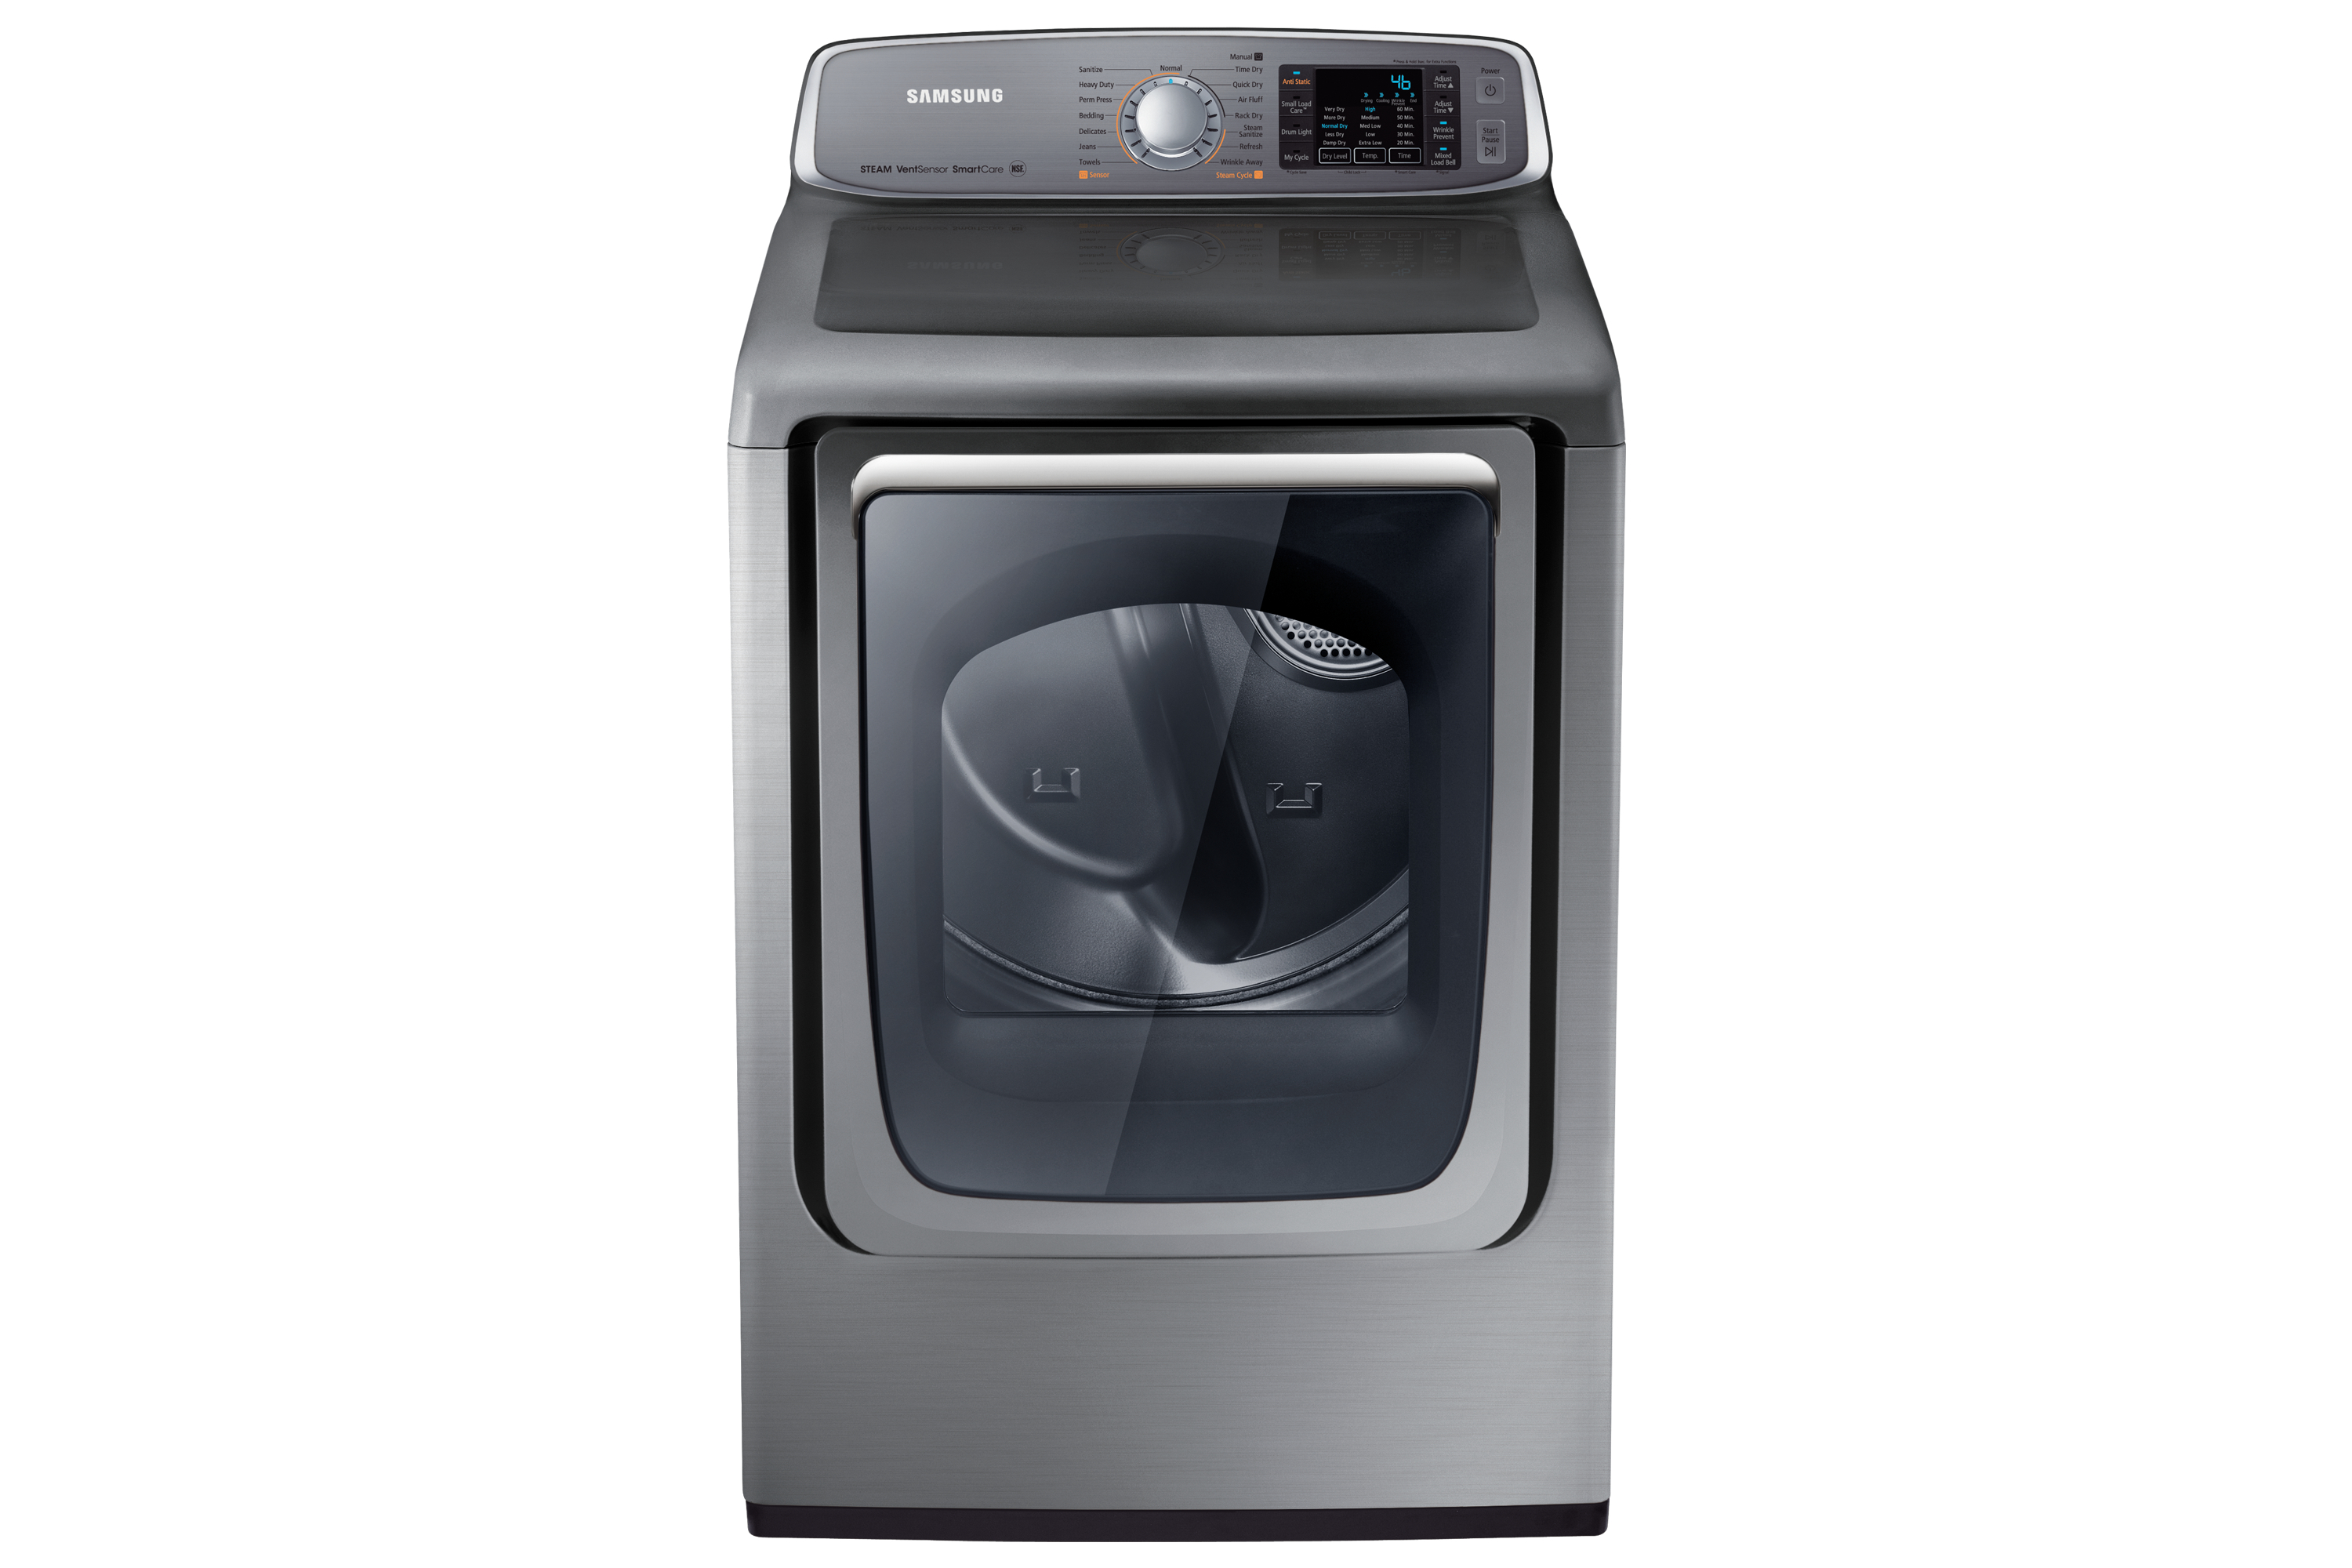 DV50 7.4 cu.ft Electric Top-Load Dryer (Stainless Platinum)